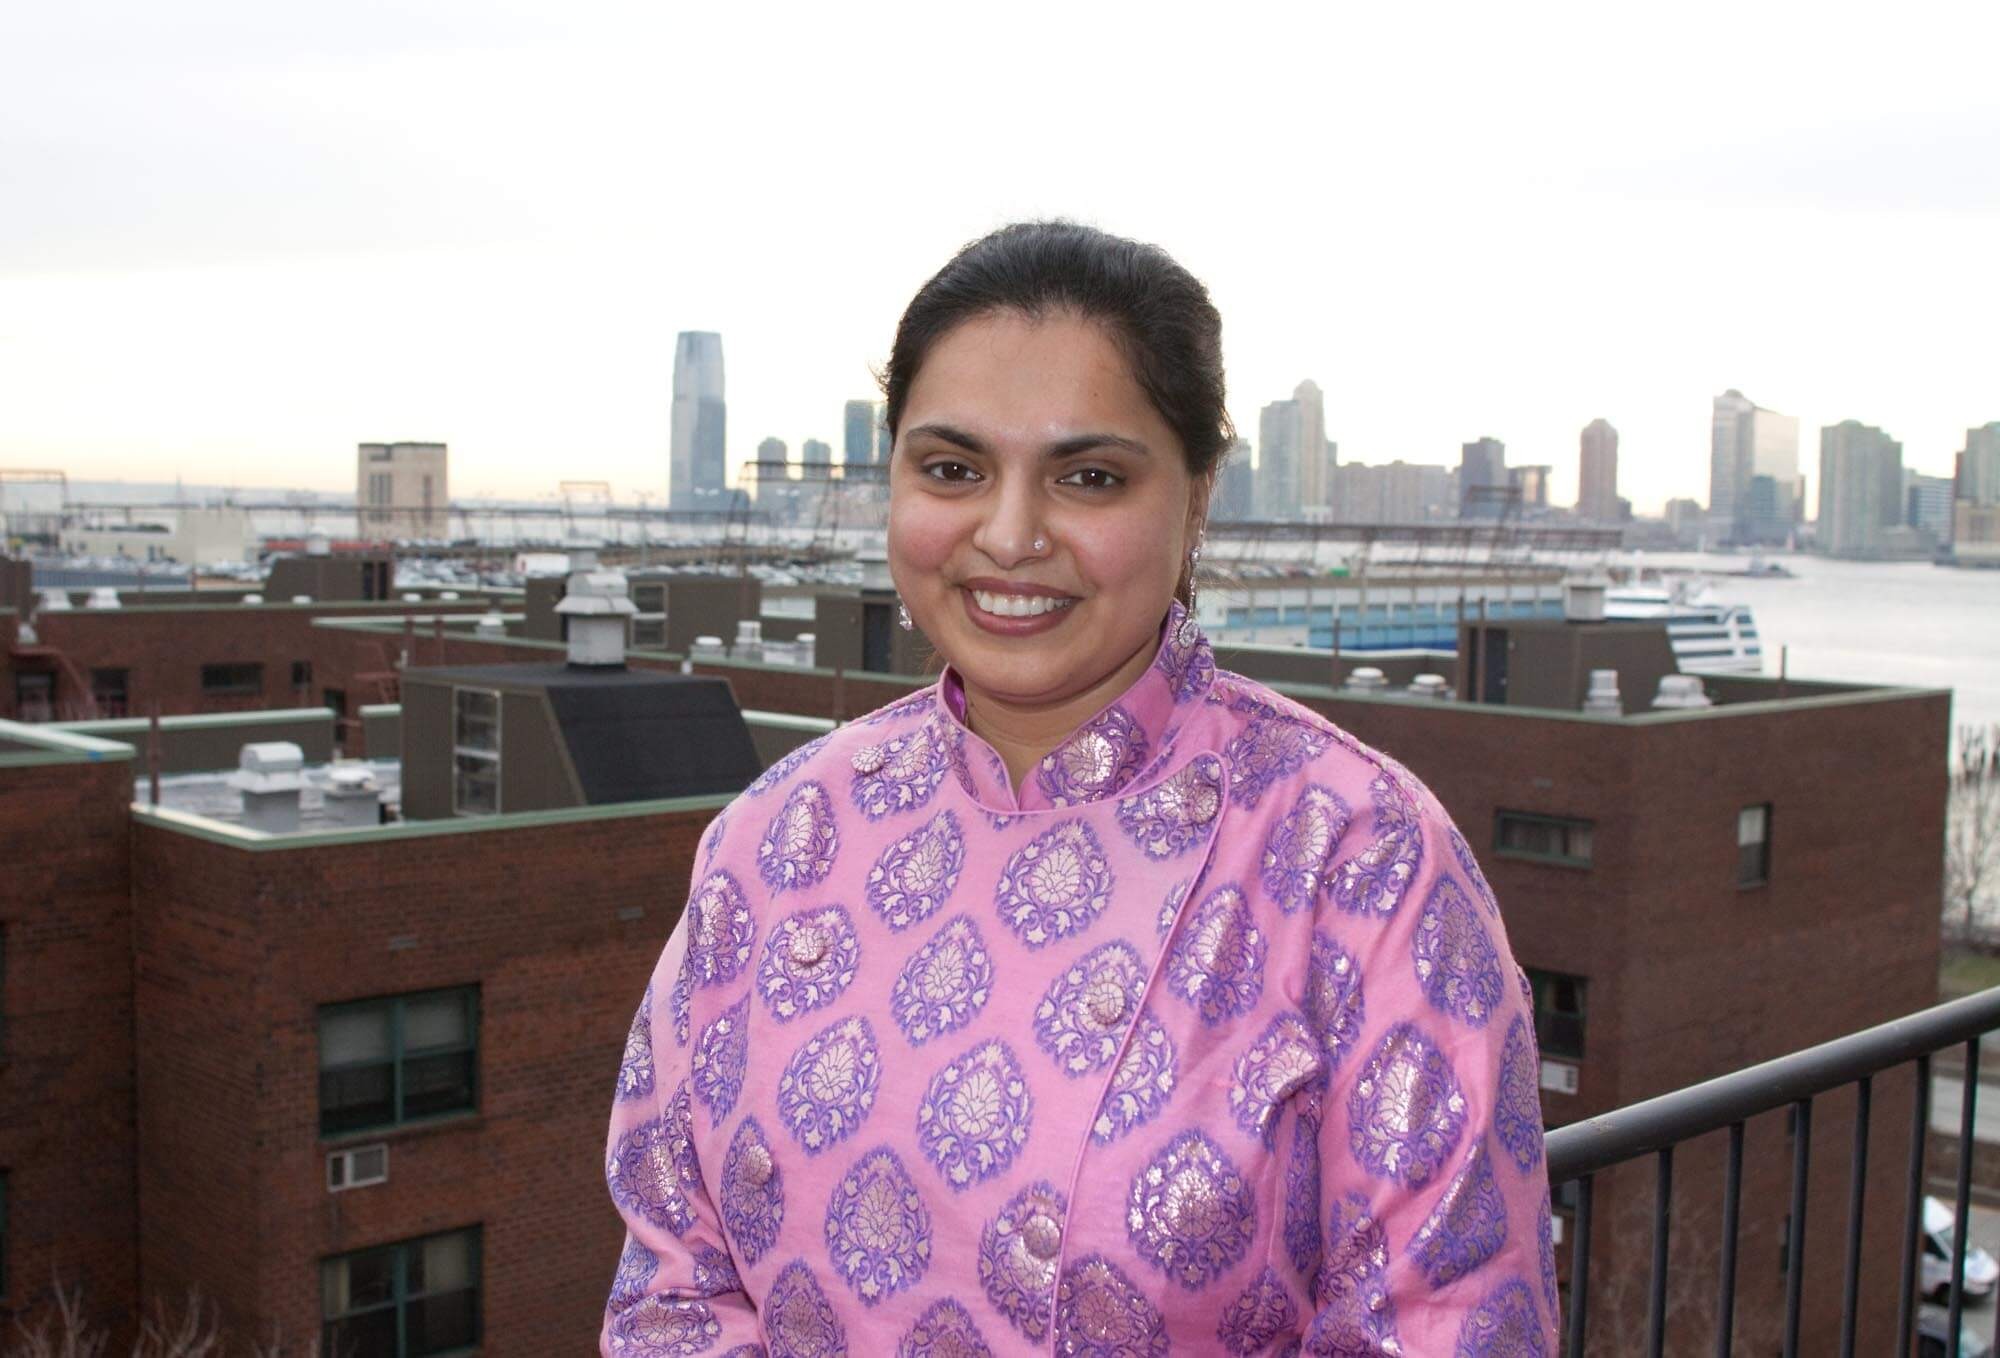 Mesmerized by Maneet Chauhan: A Woman of Multiple Talents